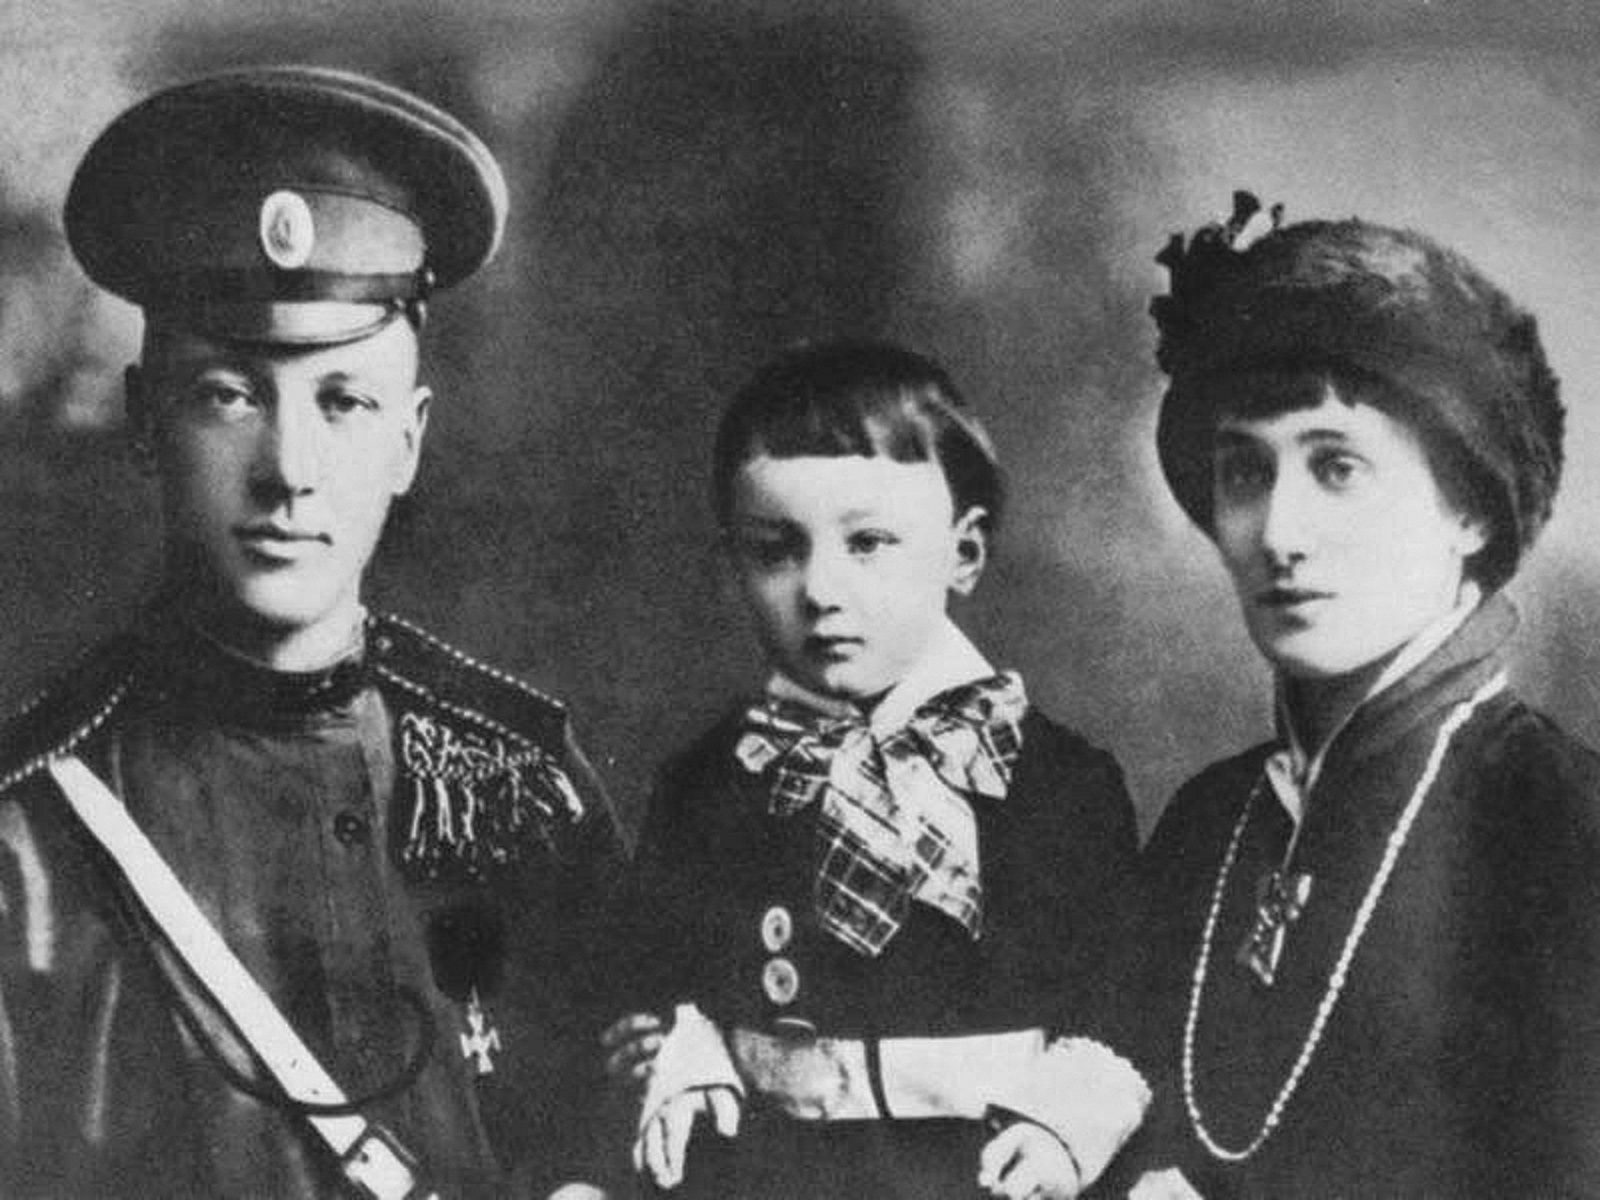 Lev Gumilev with his parents, Nikolai Gumilev and Anna Akhmatova, 1916